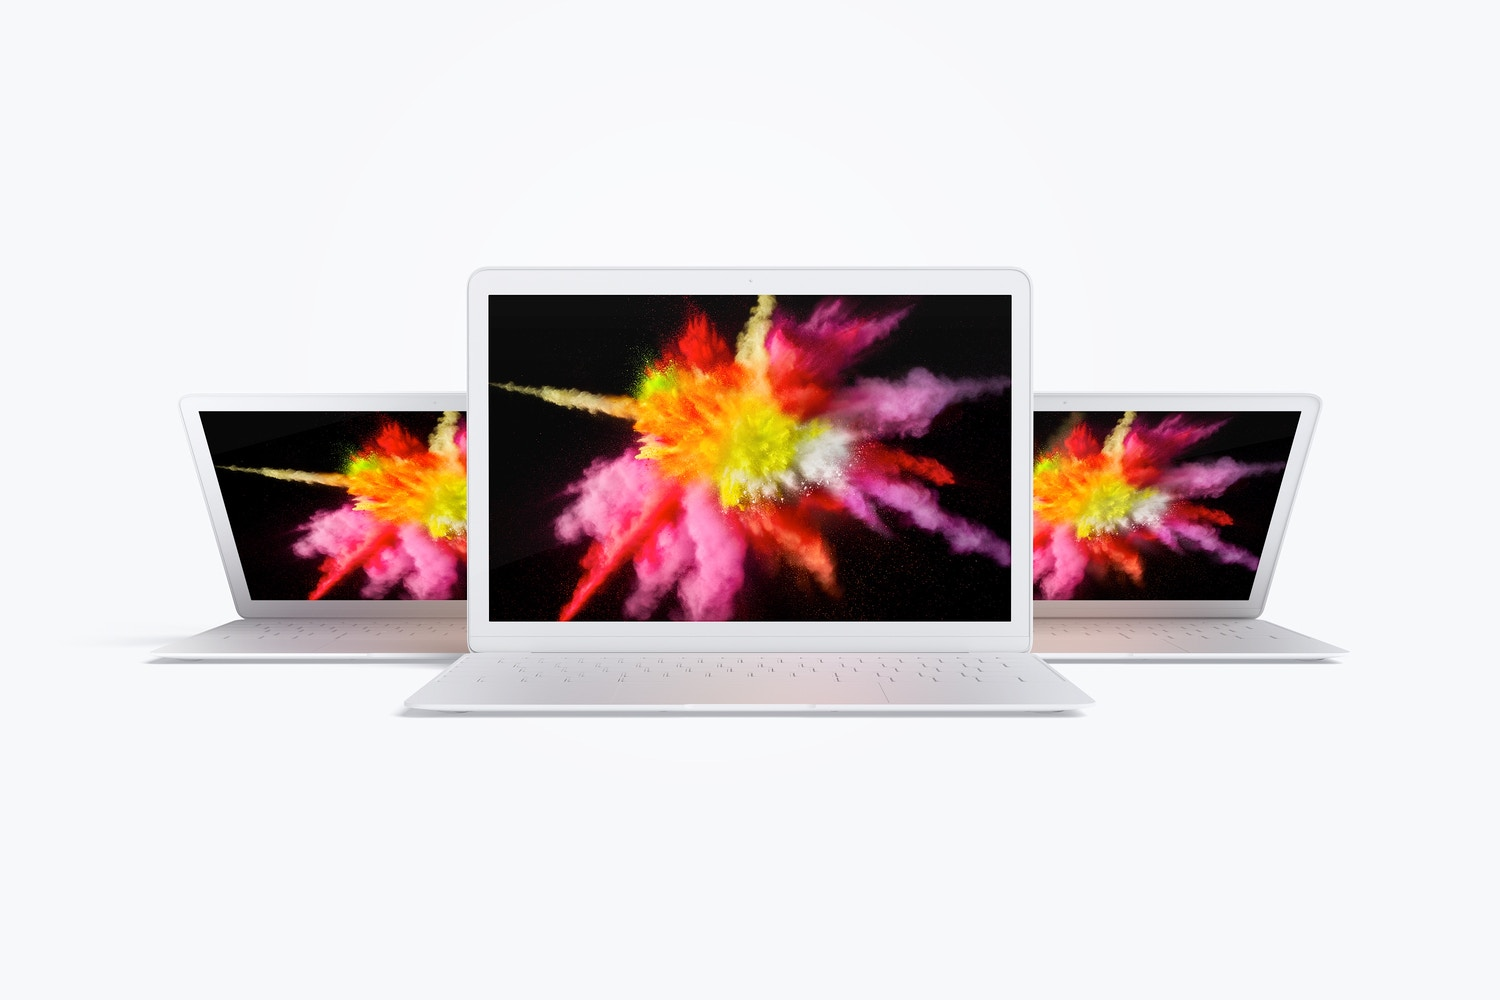 Stunning colors and effect display body reflection.